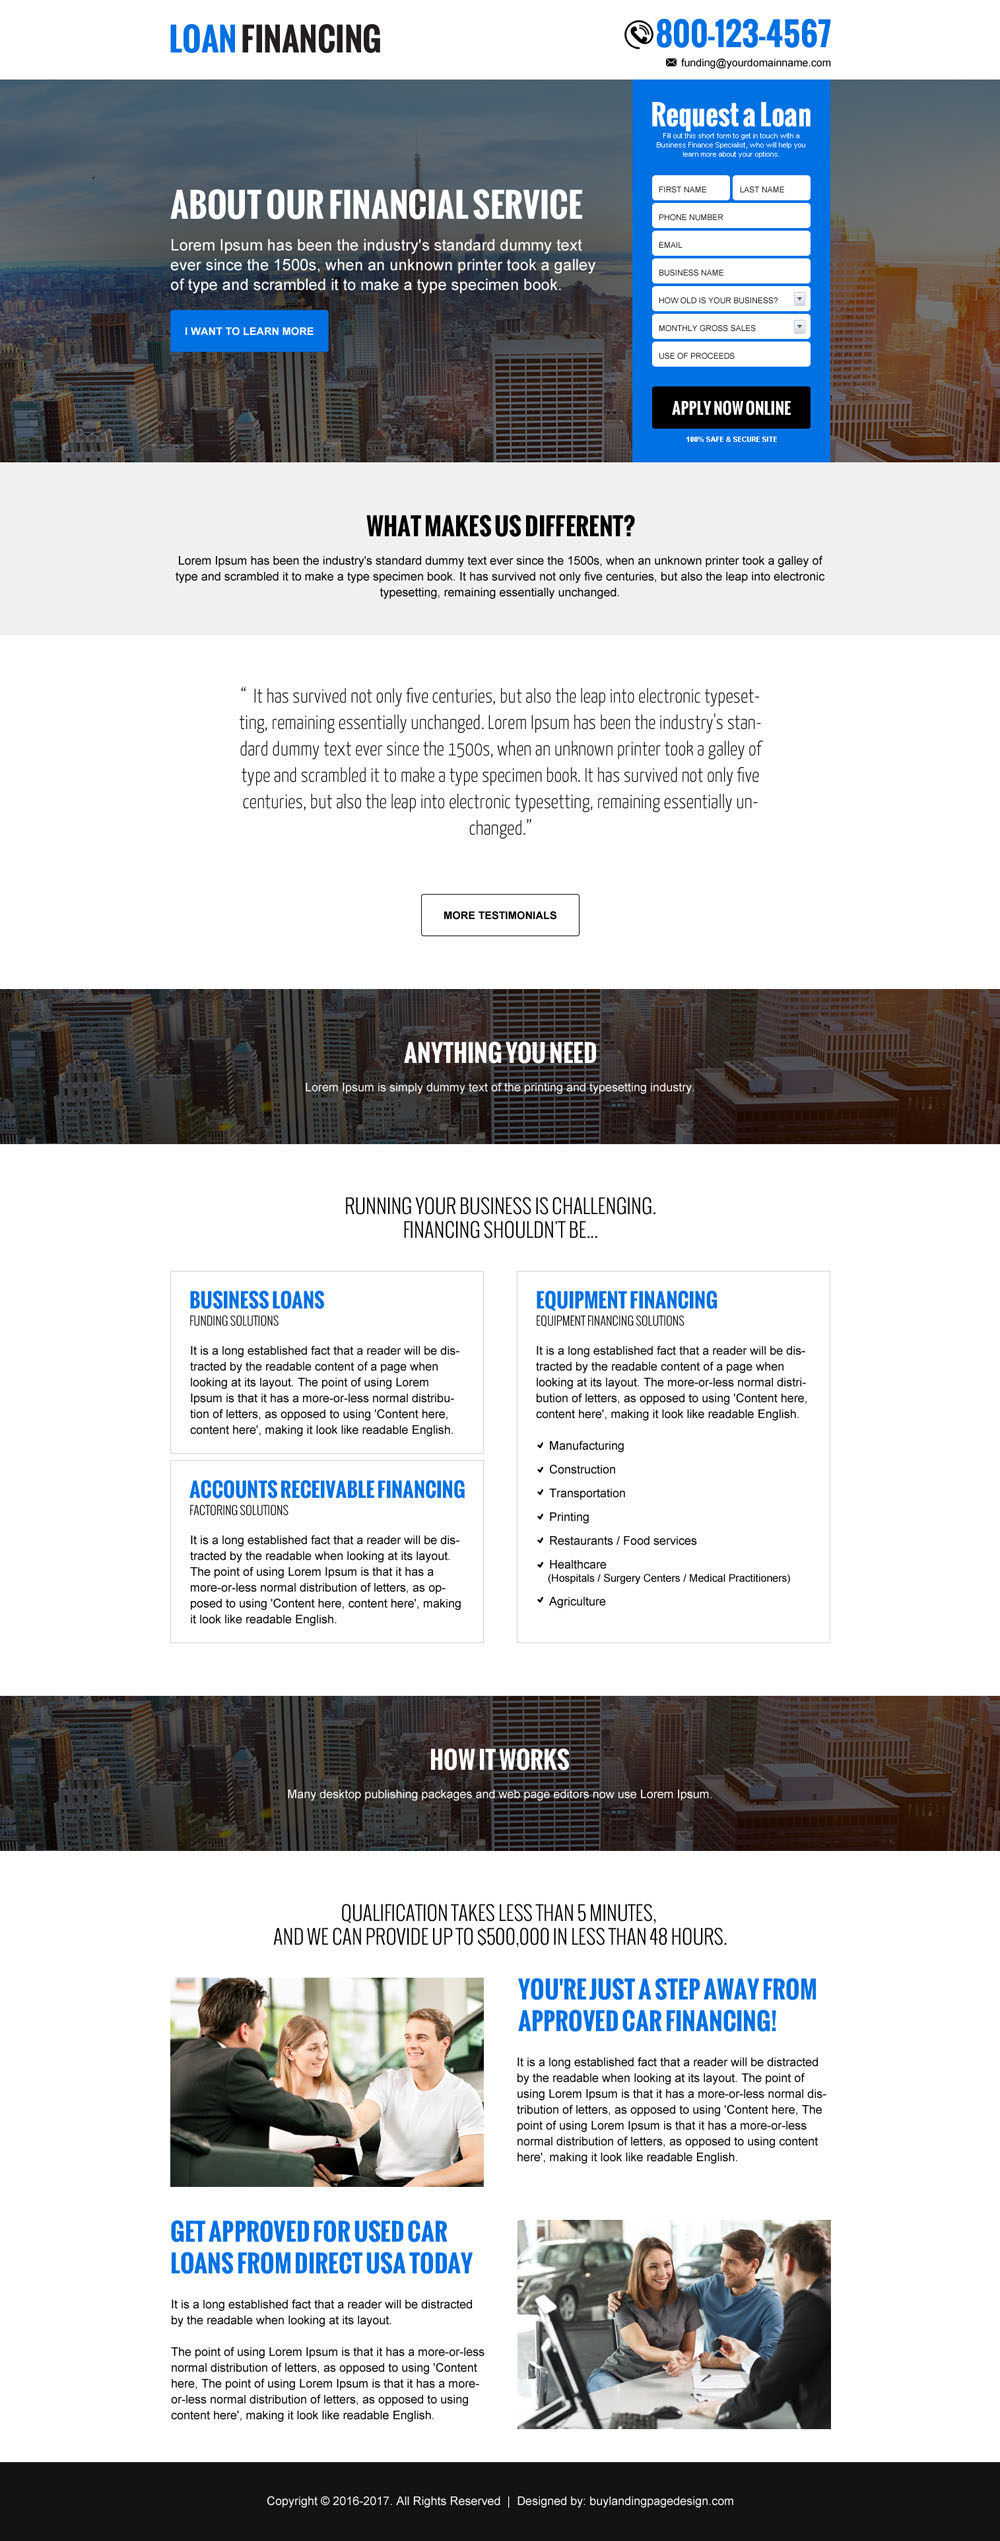 loan-financing-company-get-a-free-quote-service-lead-capture-landing-page-design-022